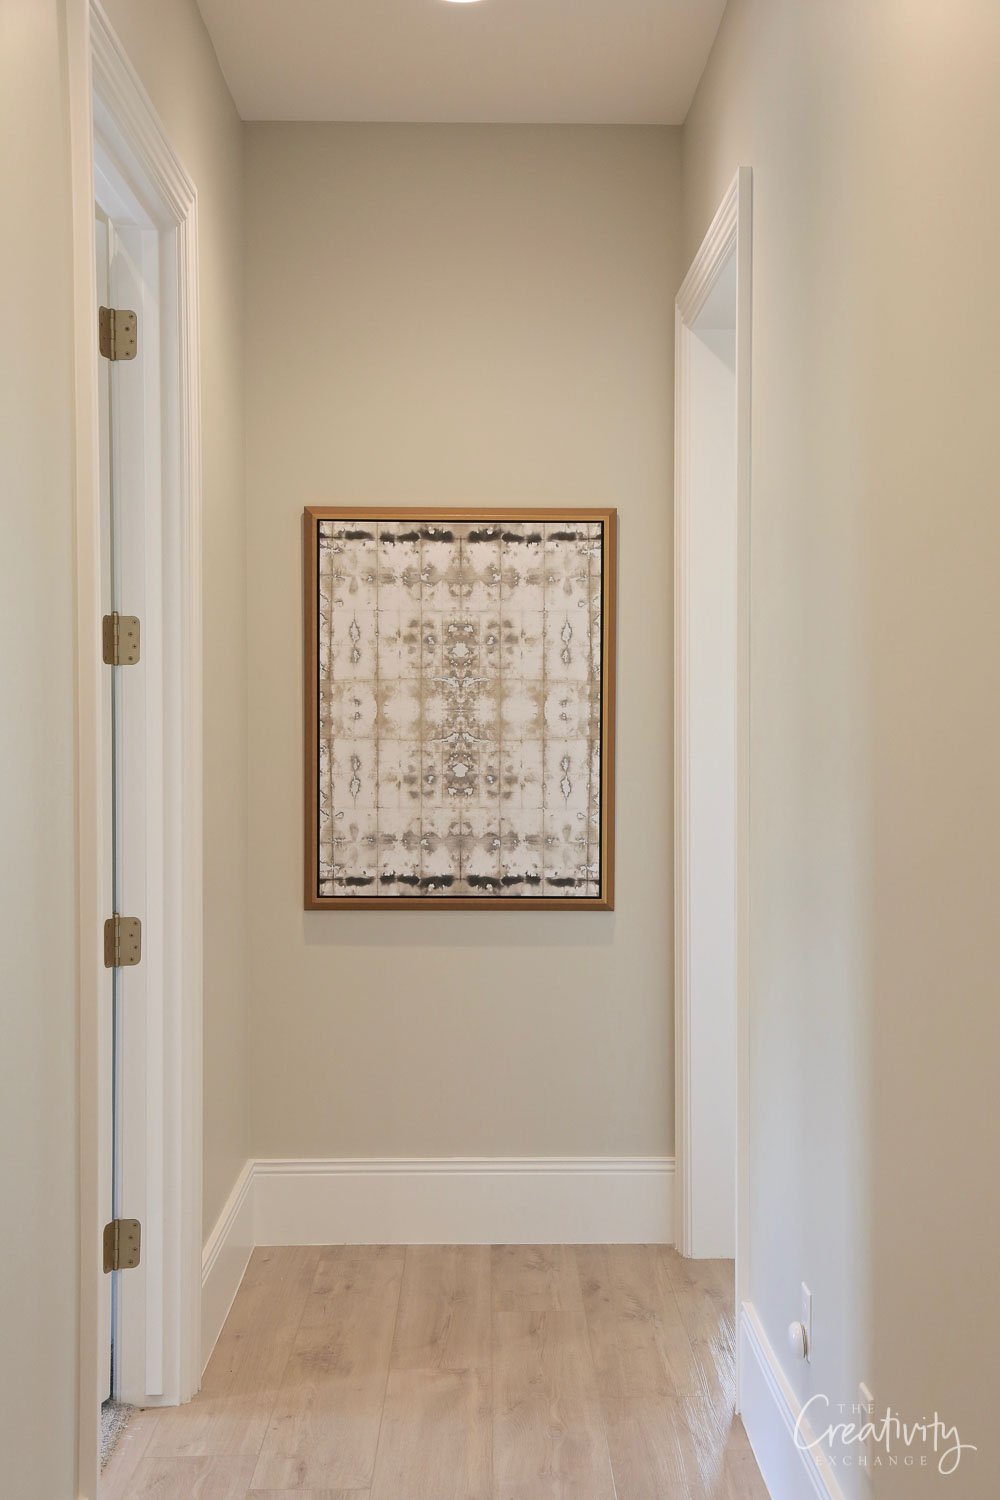 Wall color is Sherwin Williams Useful Gray